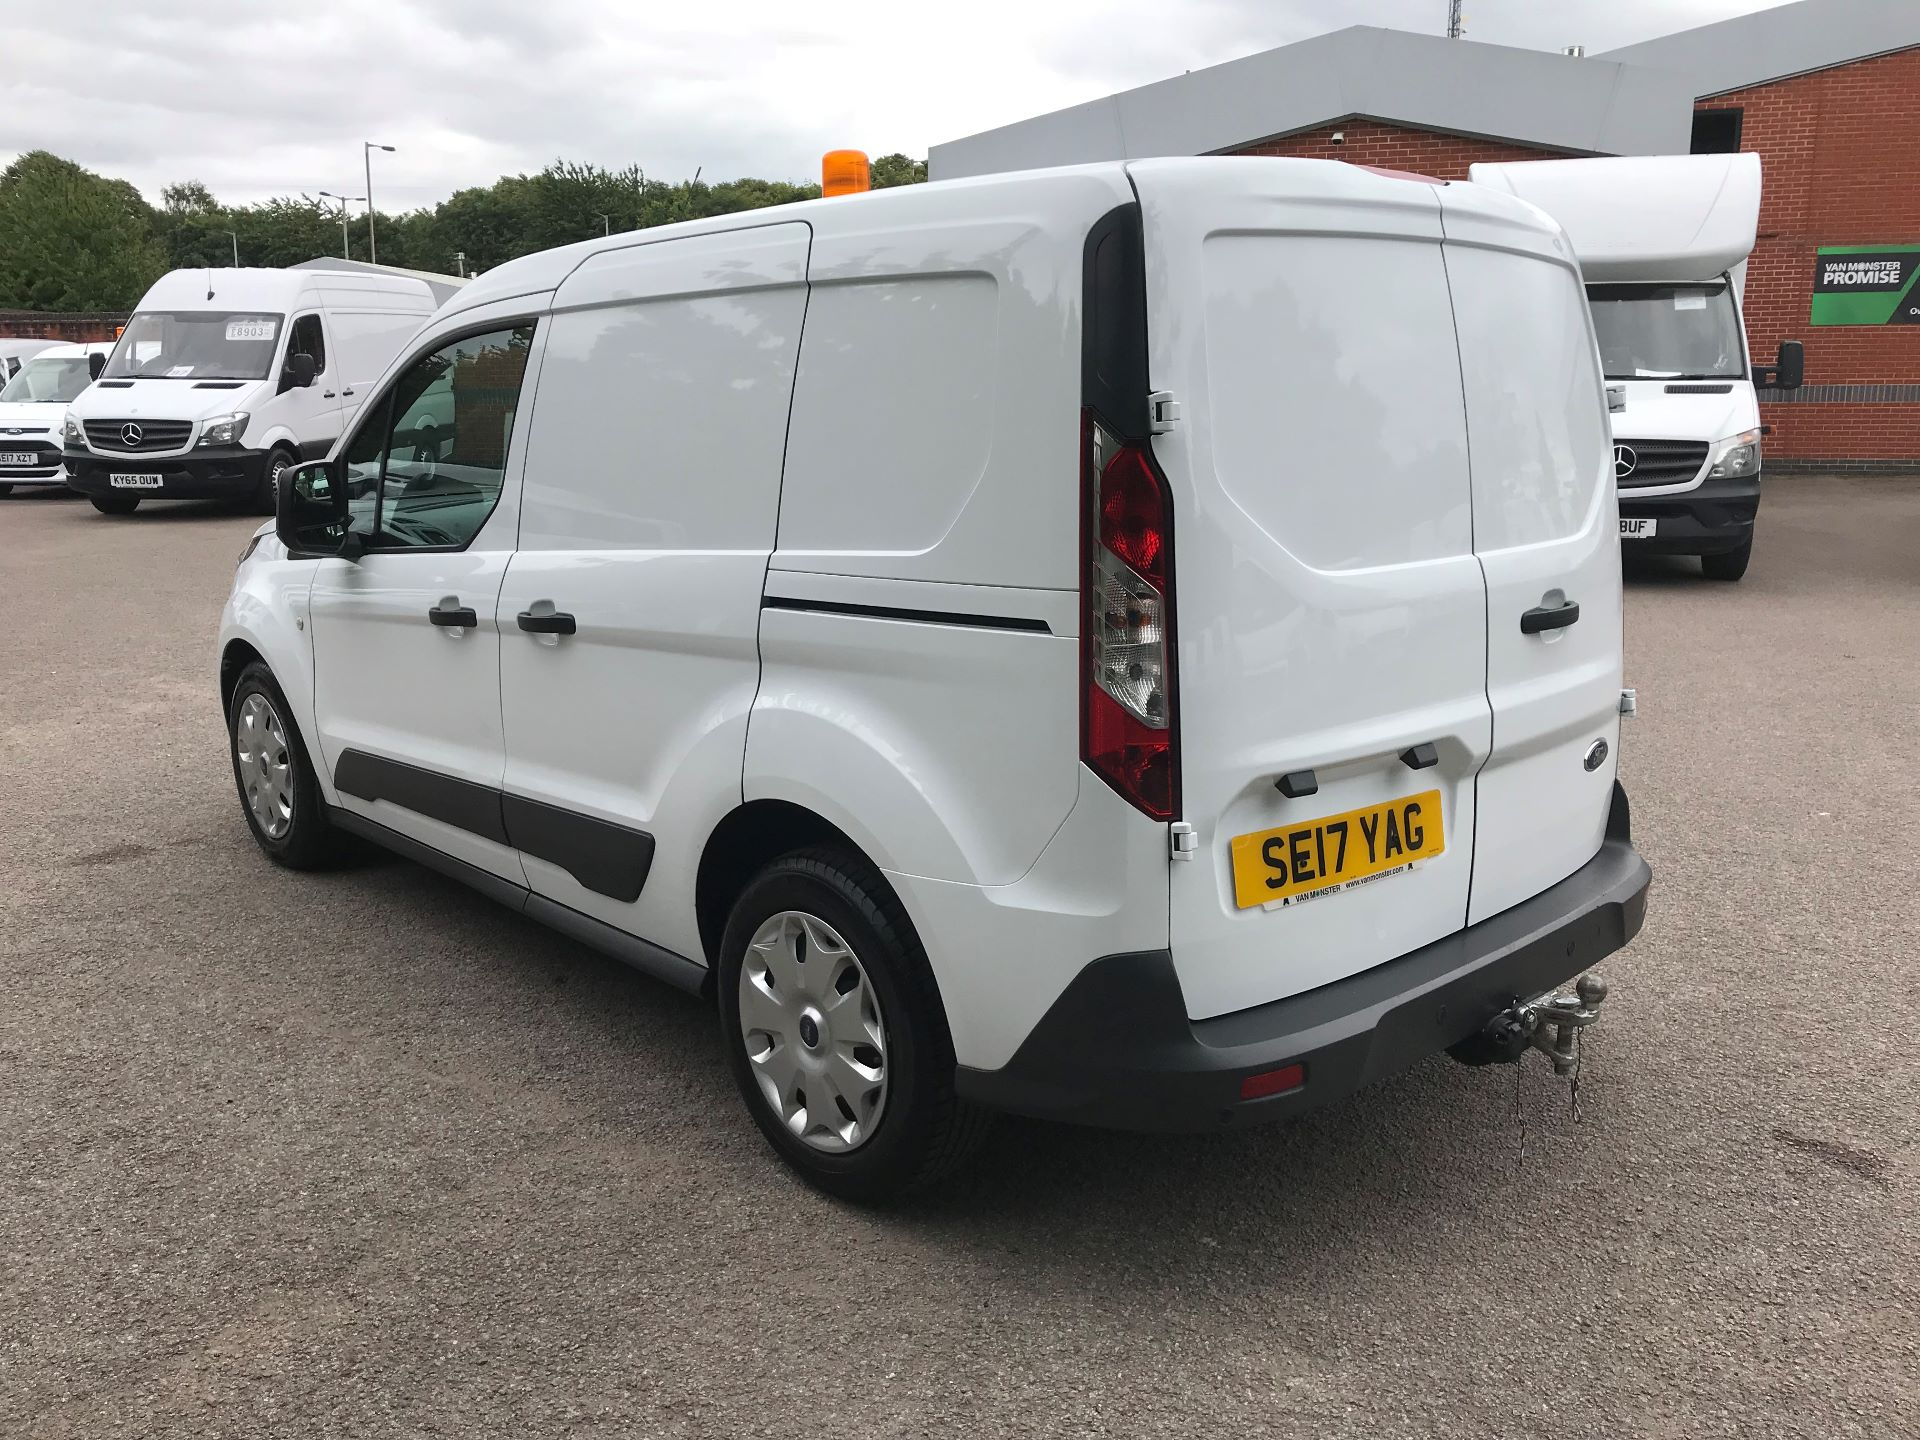 2017 Ford Transit Connect 1.0 100Ps Trend Van euro 6 (SE17YAG) Image 12